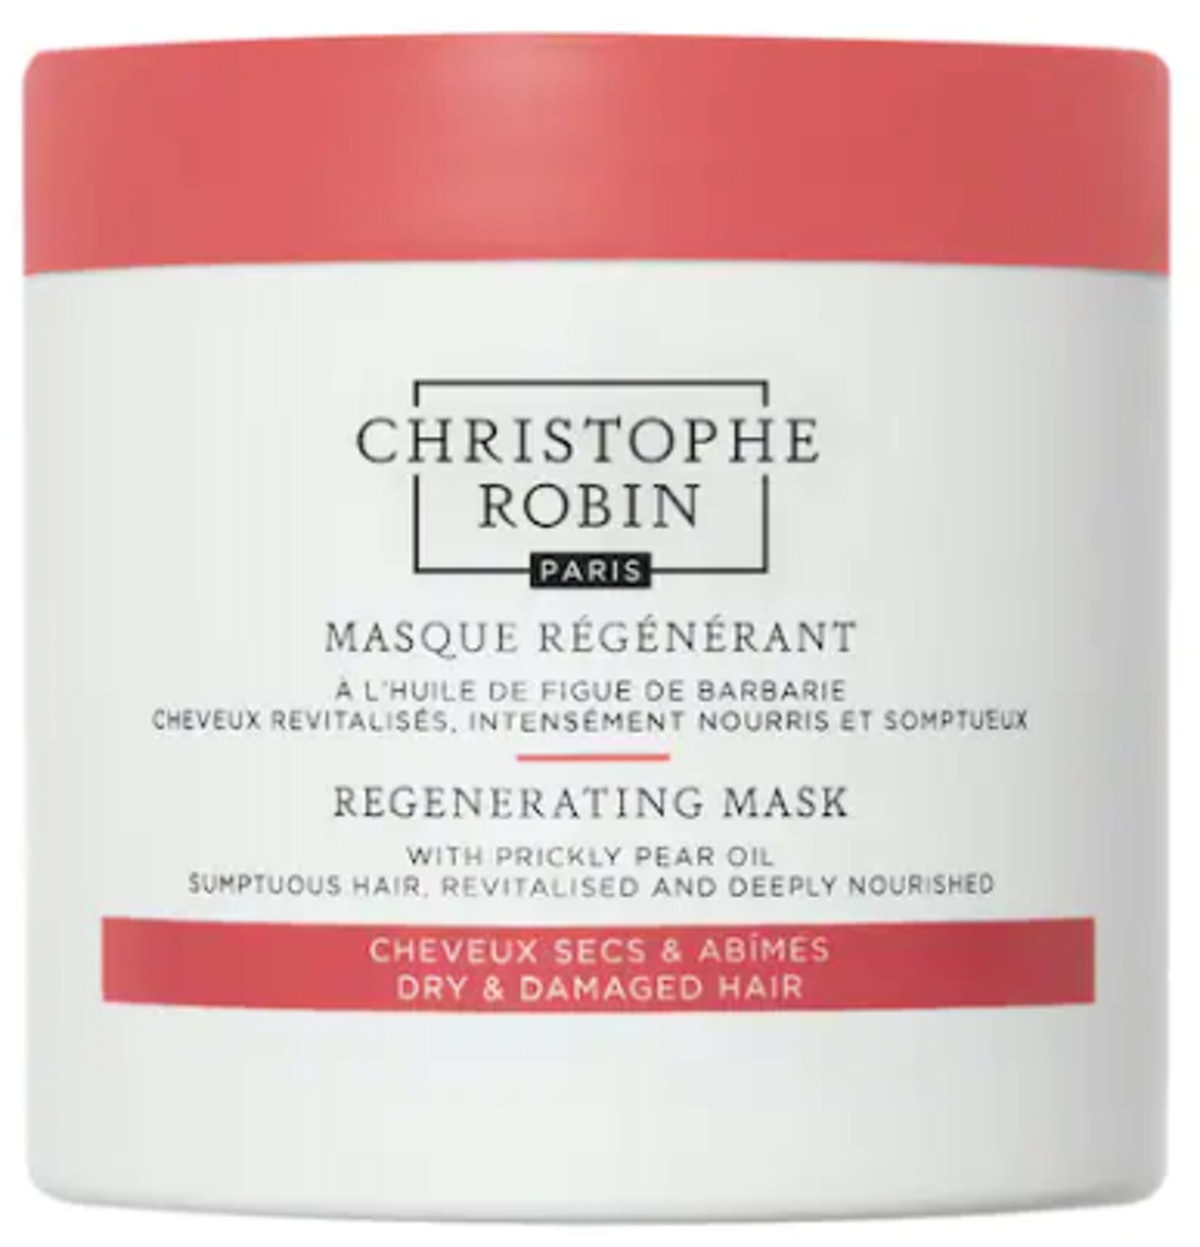 Regenerating Hair Mask with Prickly Pear Seed Oil